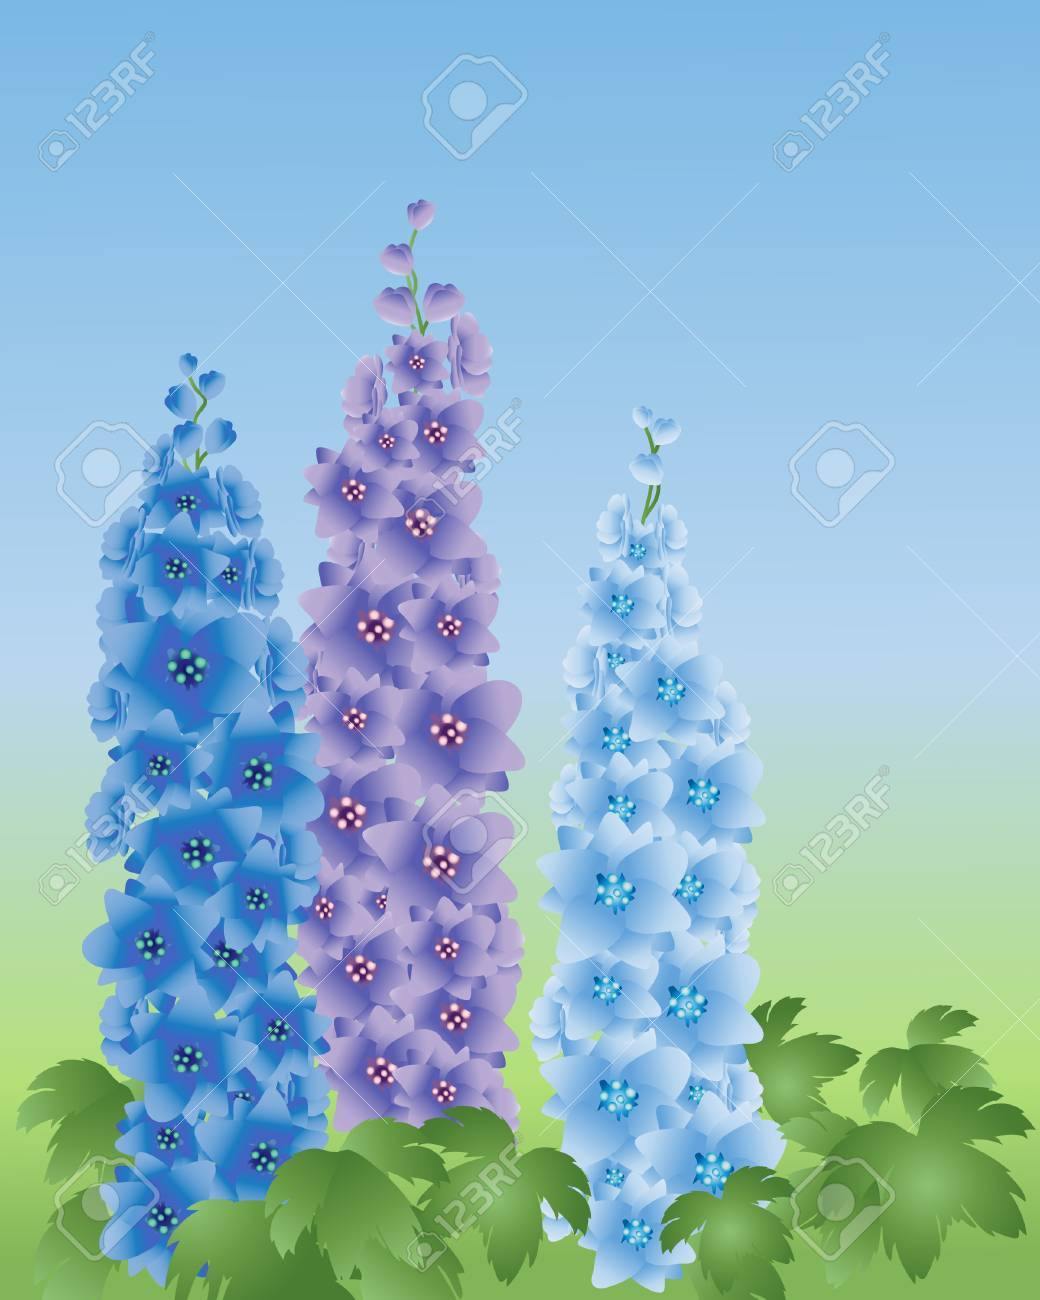 an illustration of three delphinium flower spikes in shades of blue on a green and blue background Stock Vector - 8441161